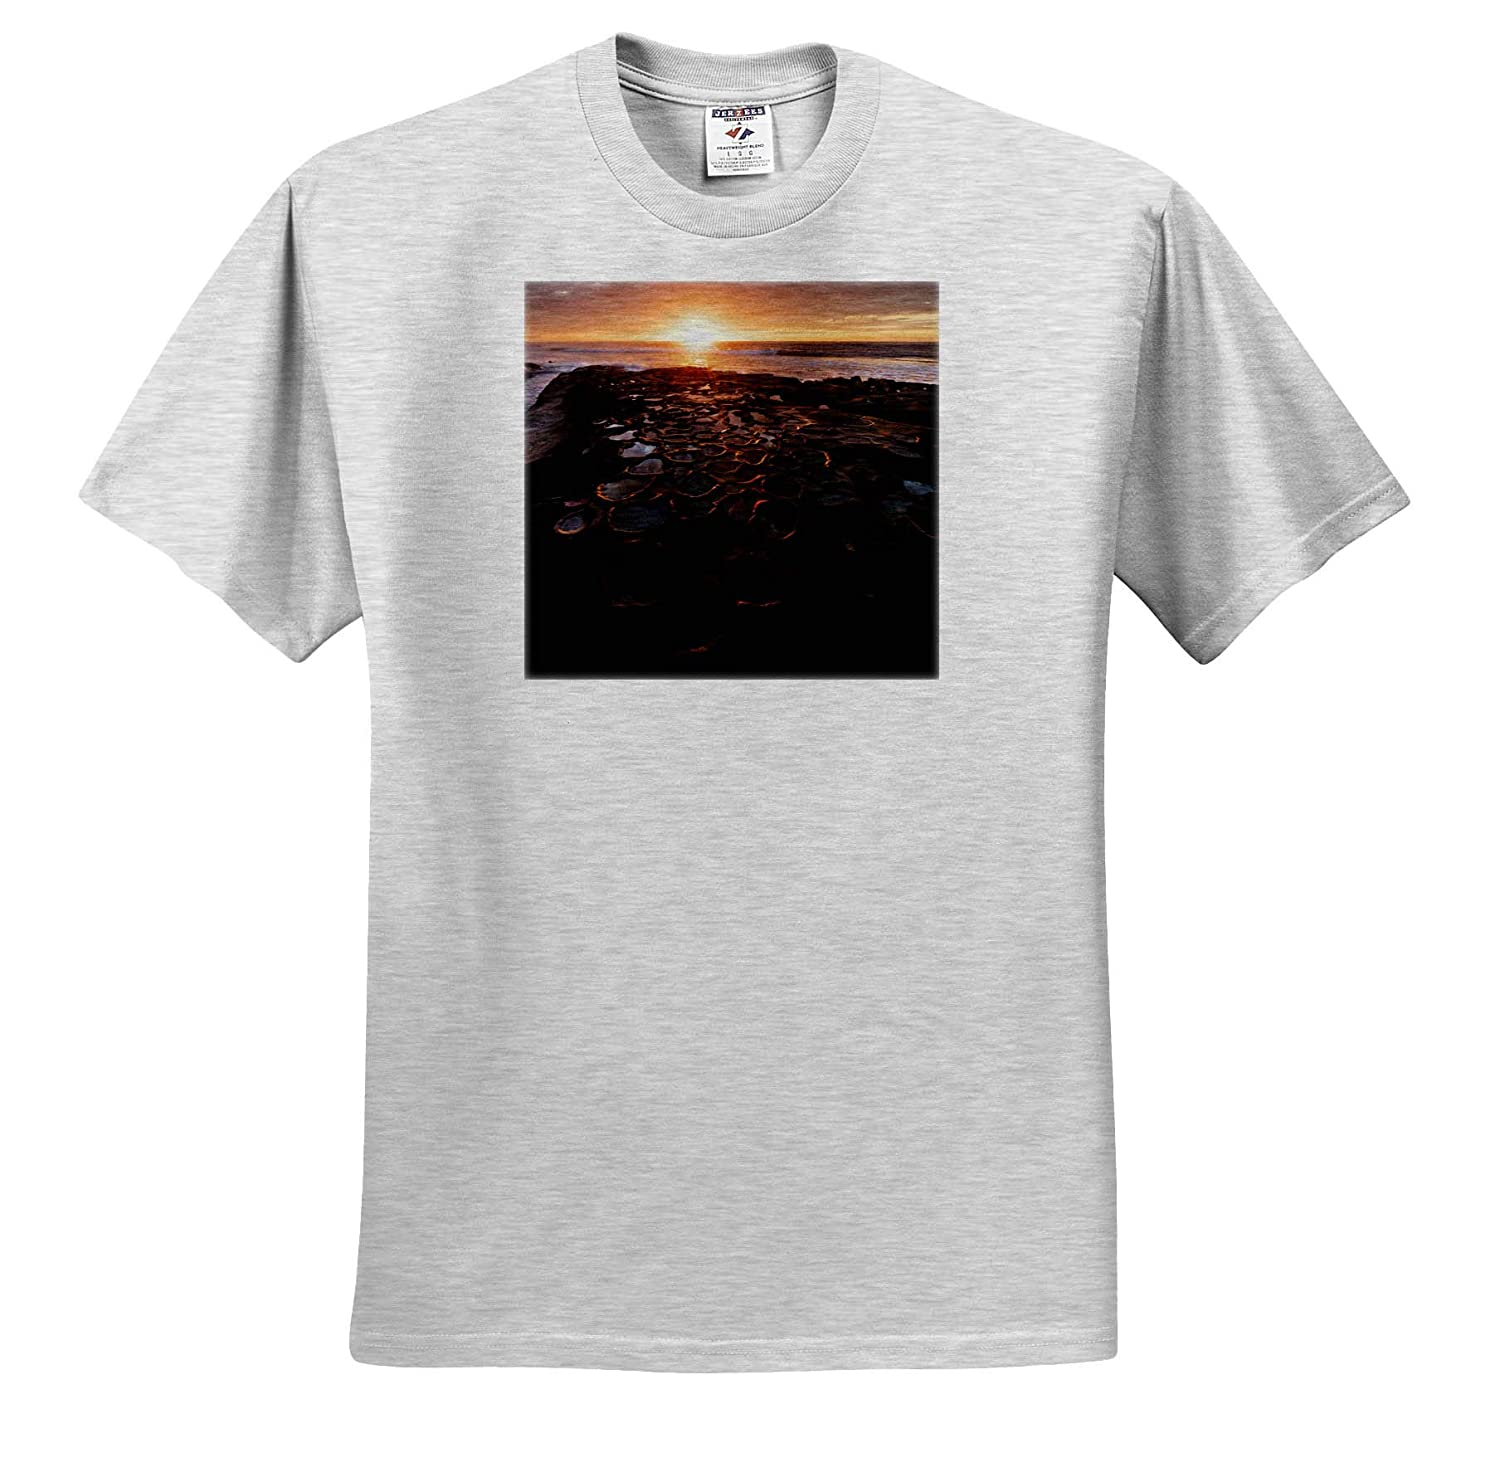 La Jolla California Sunset Over Tide Pools 3dRose Danita Delimont Seascapes - Adult T-Shirt XL USA ts/_314639